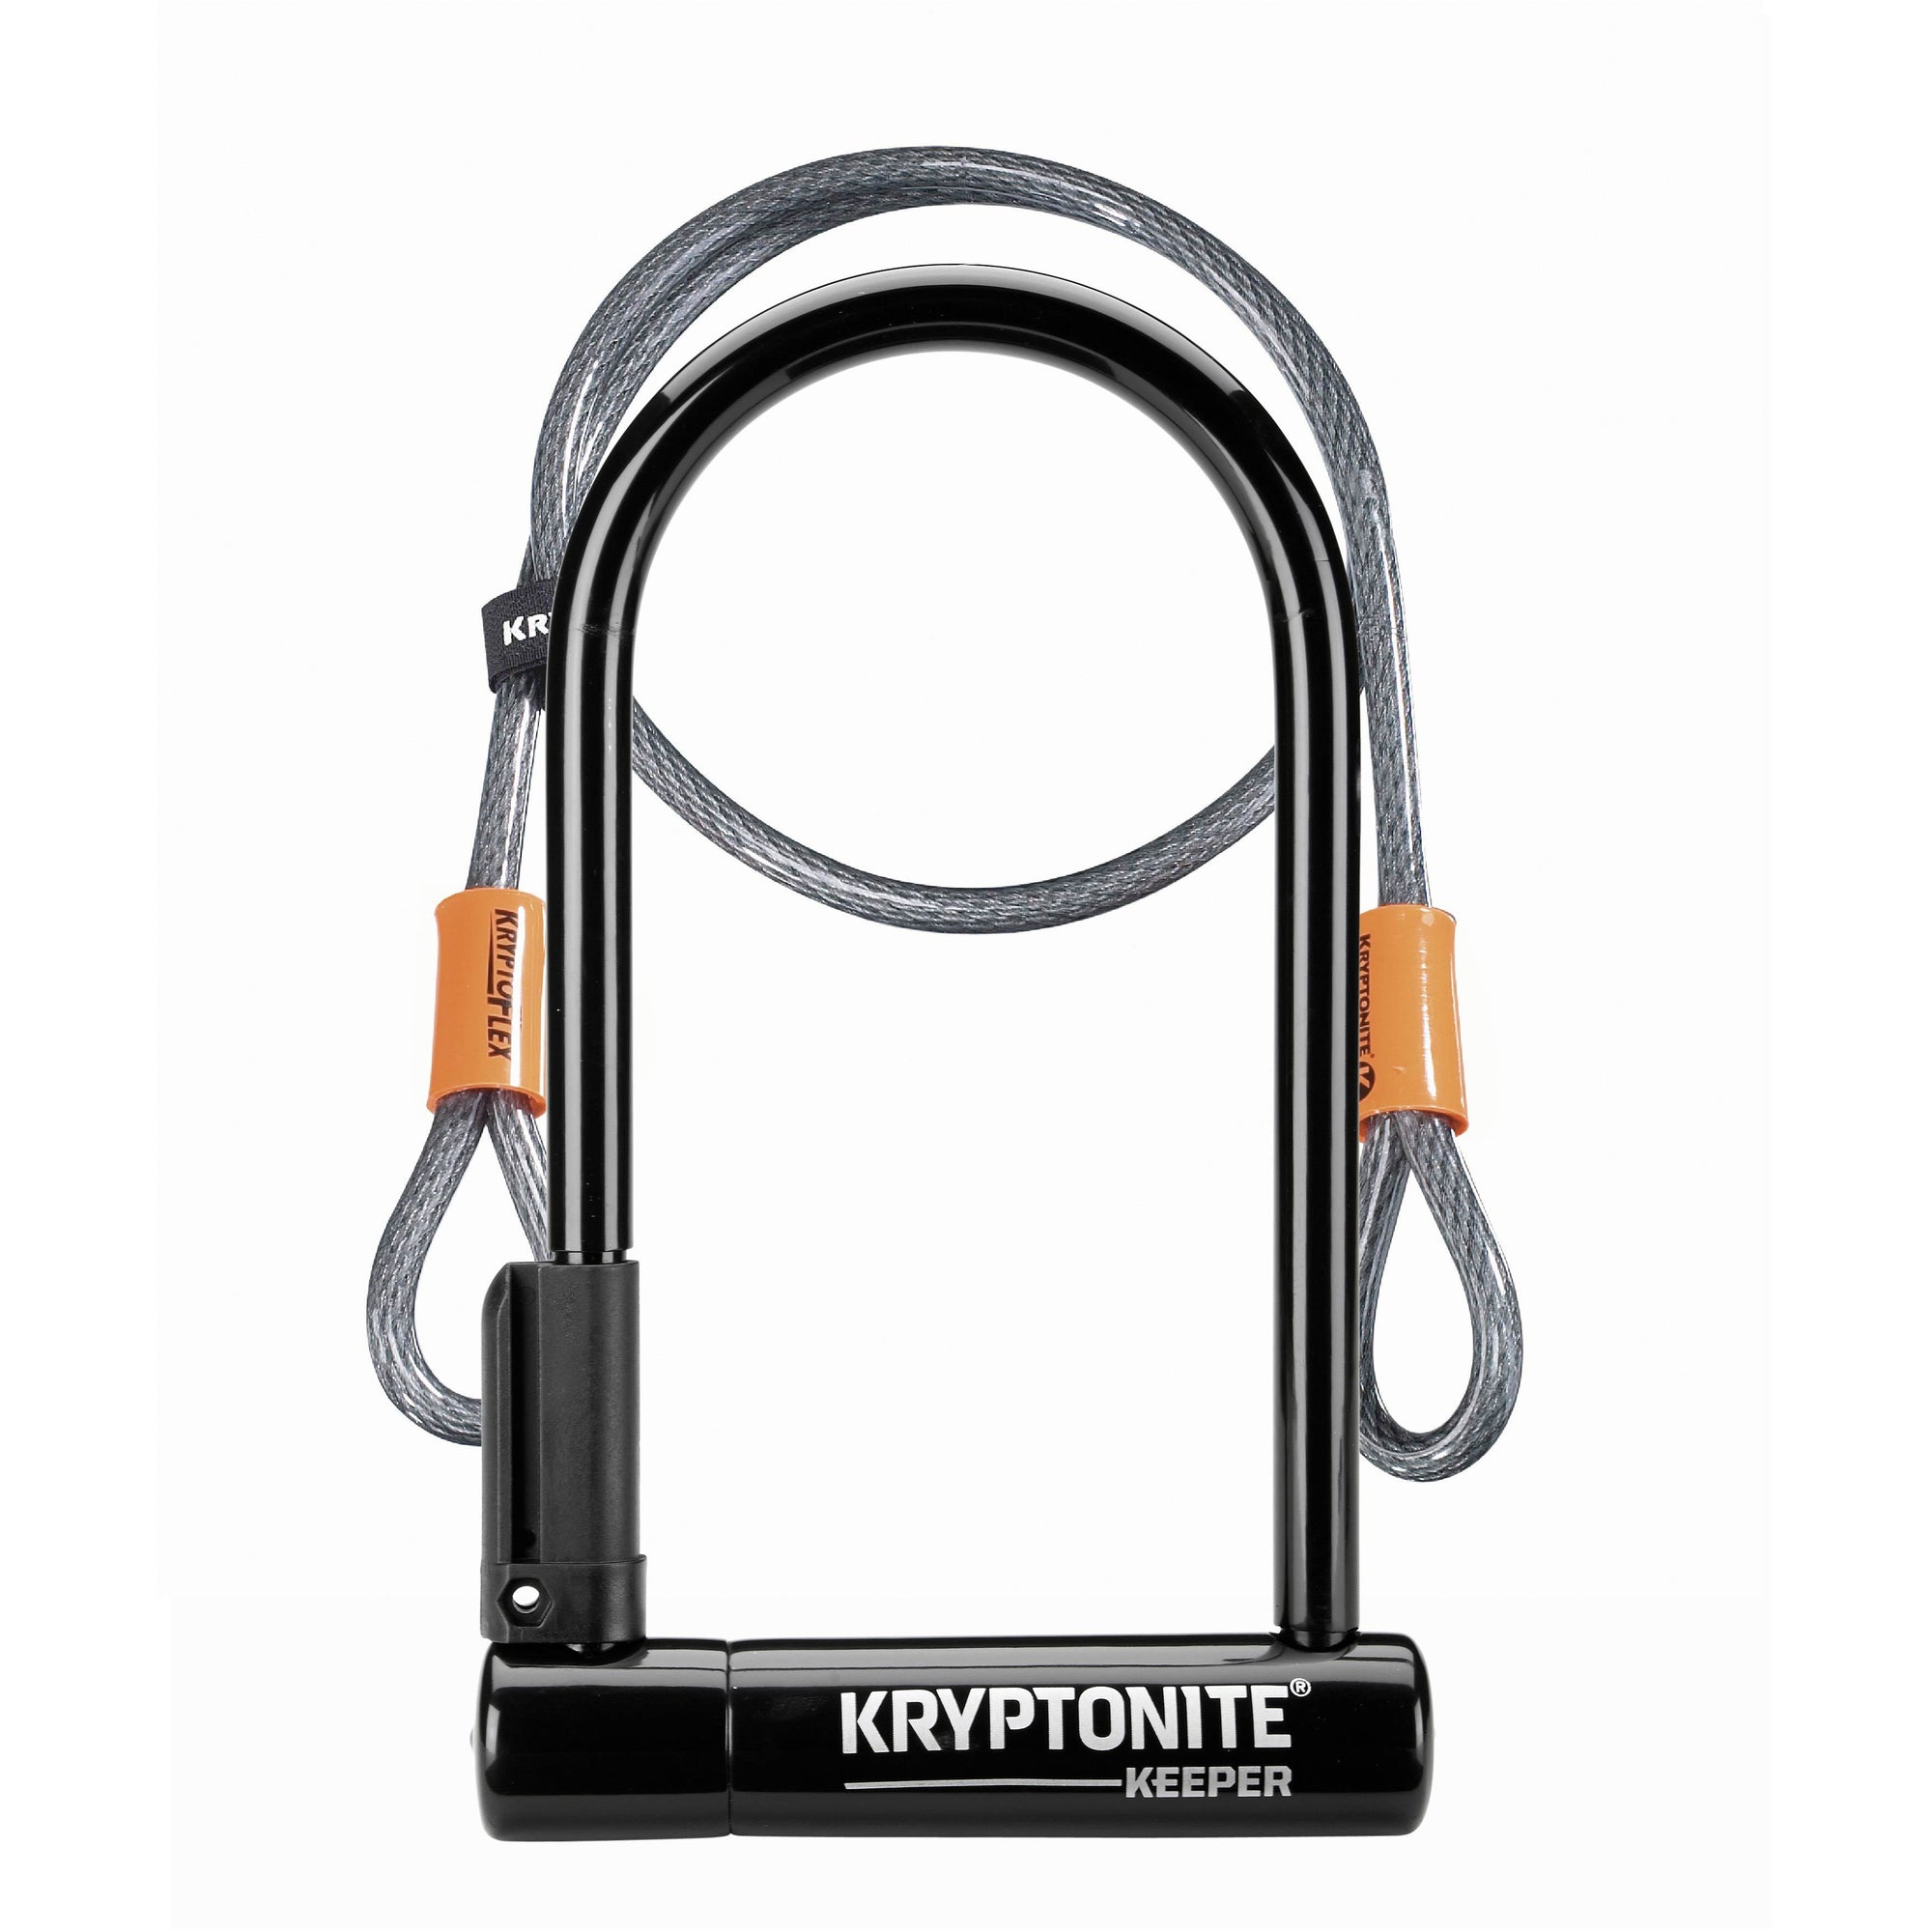 Kryptonite KEEPER 12 STD with 4' Cable Lock